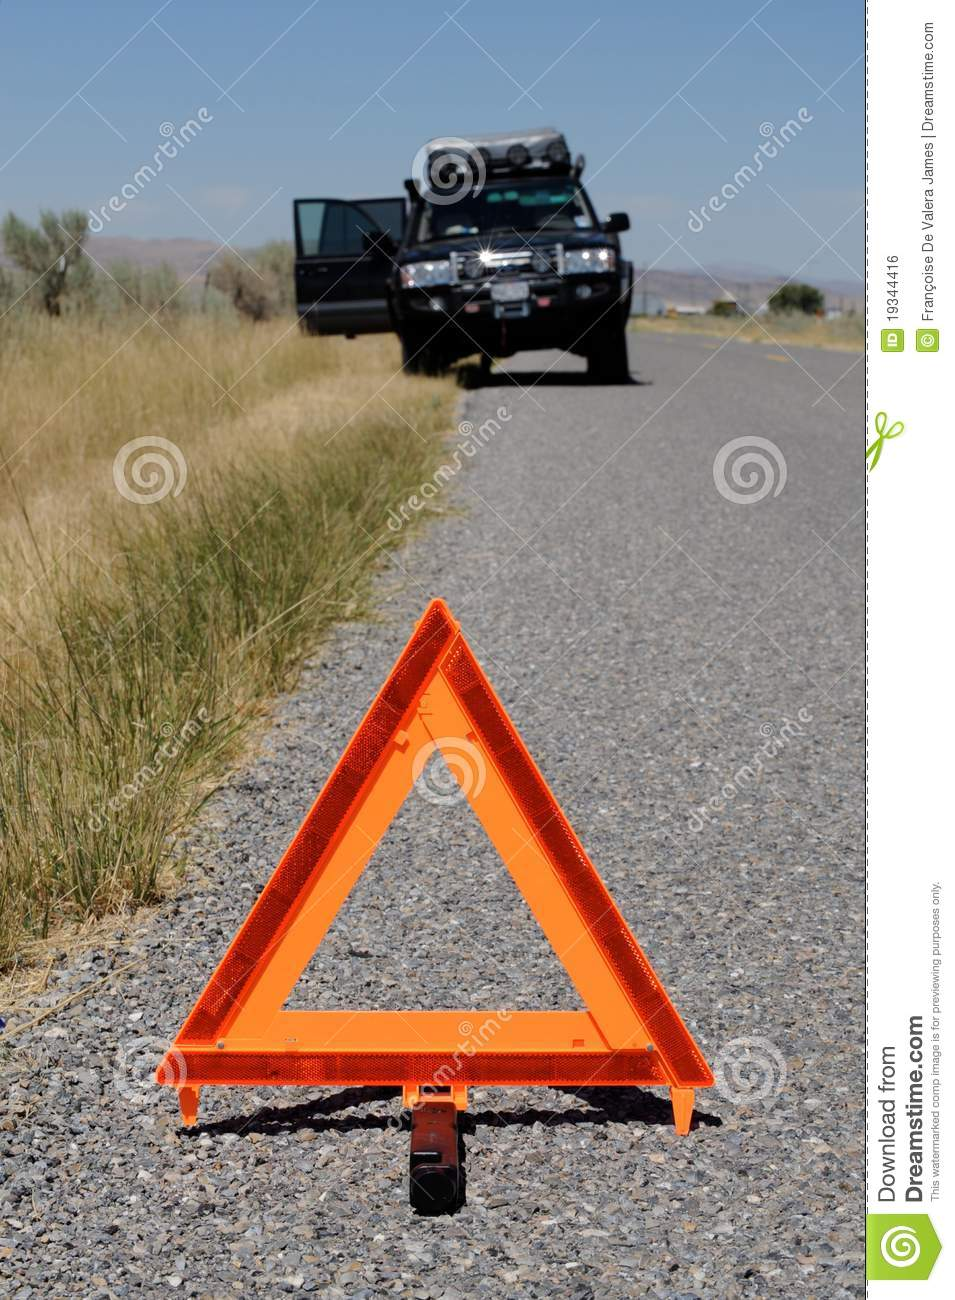 Broken Down Abandoned Stock Photos Broken Down Abandoned: Car Broken Down On Road With Warning Triangle Royalty Free